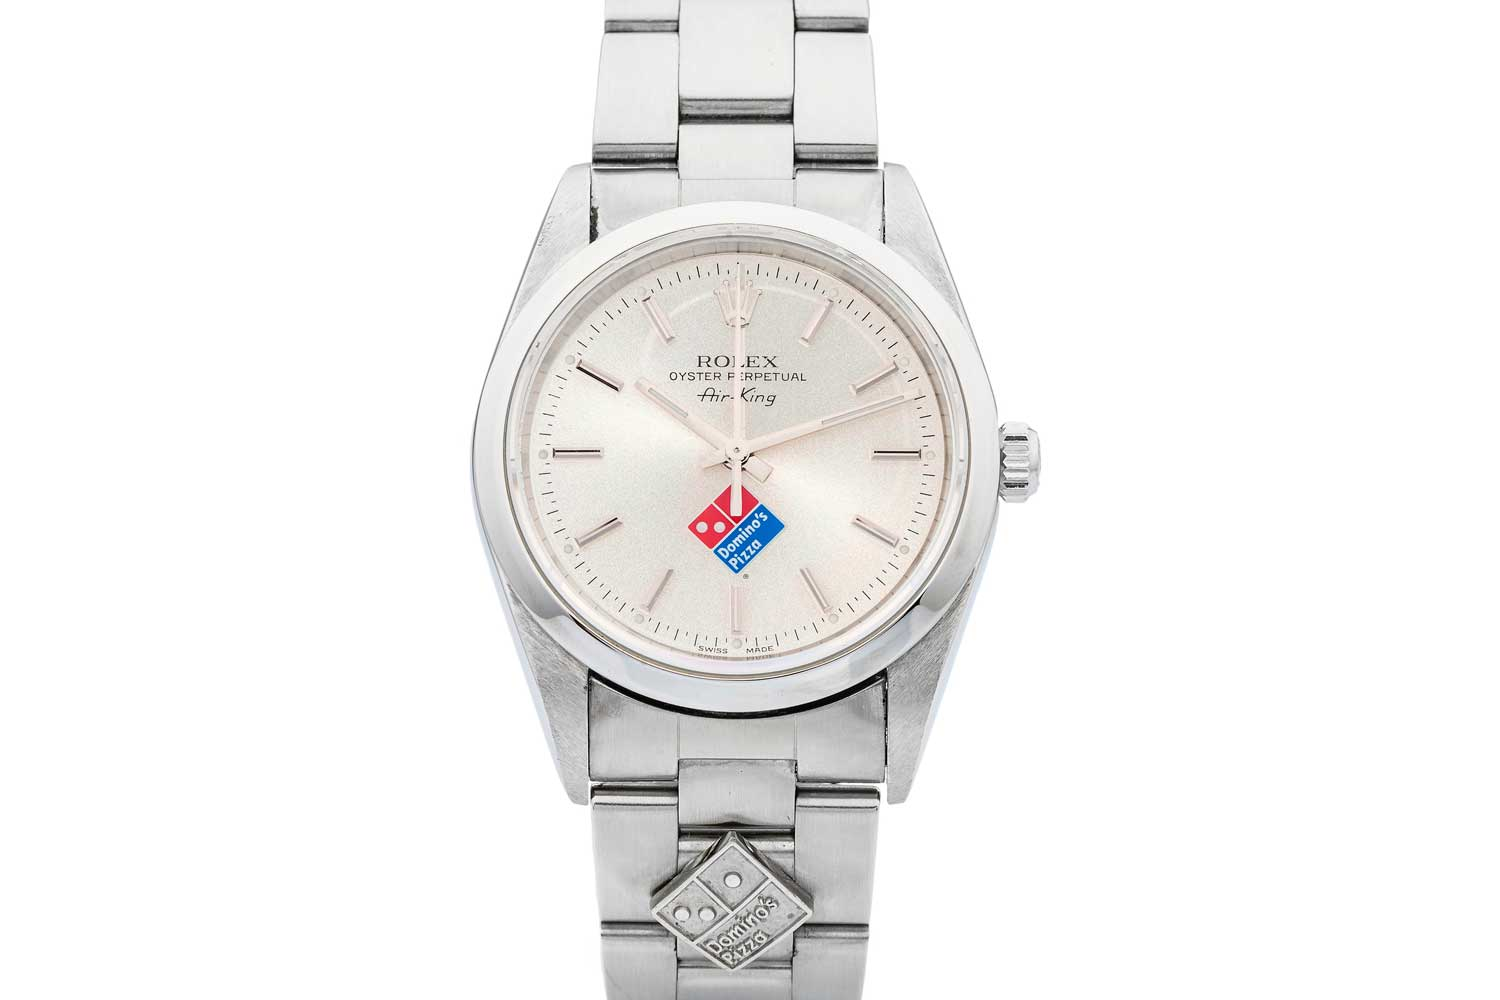 One of the most commonly ordered Rolex watches with specially printed dials was the humble Air King; pictured here is an instance of the Ref. 14000, Air-King with the Domino's Pizza company's logy and as well a metal badge adorning the steel bracelet (Image: Antiquorum)